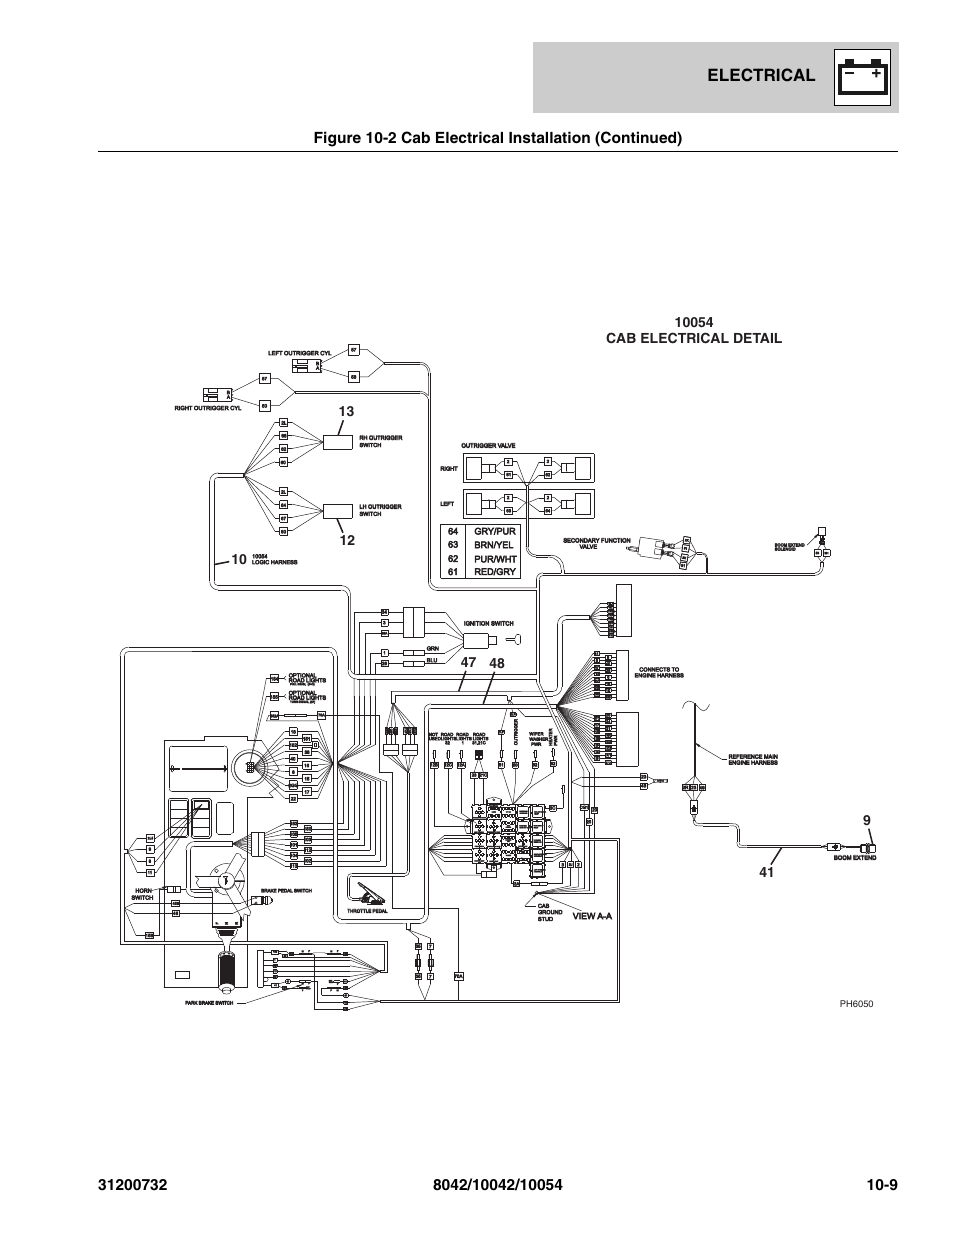 Electrical, Parkbrake dis relay, Not used | SkyTrak 8042 Parts Manual User  Manual | Page 317 / 388Manuals Directory